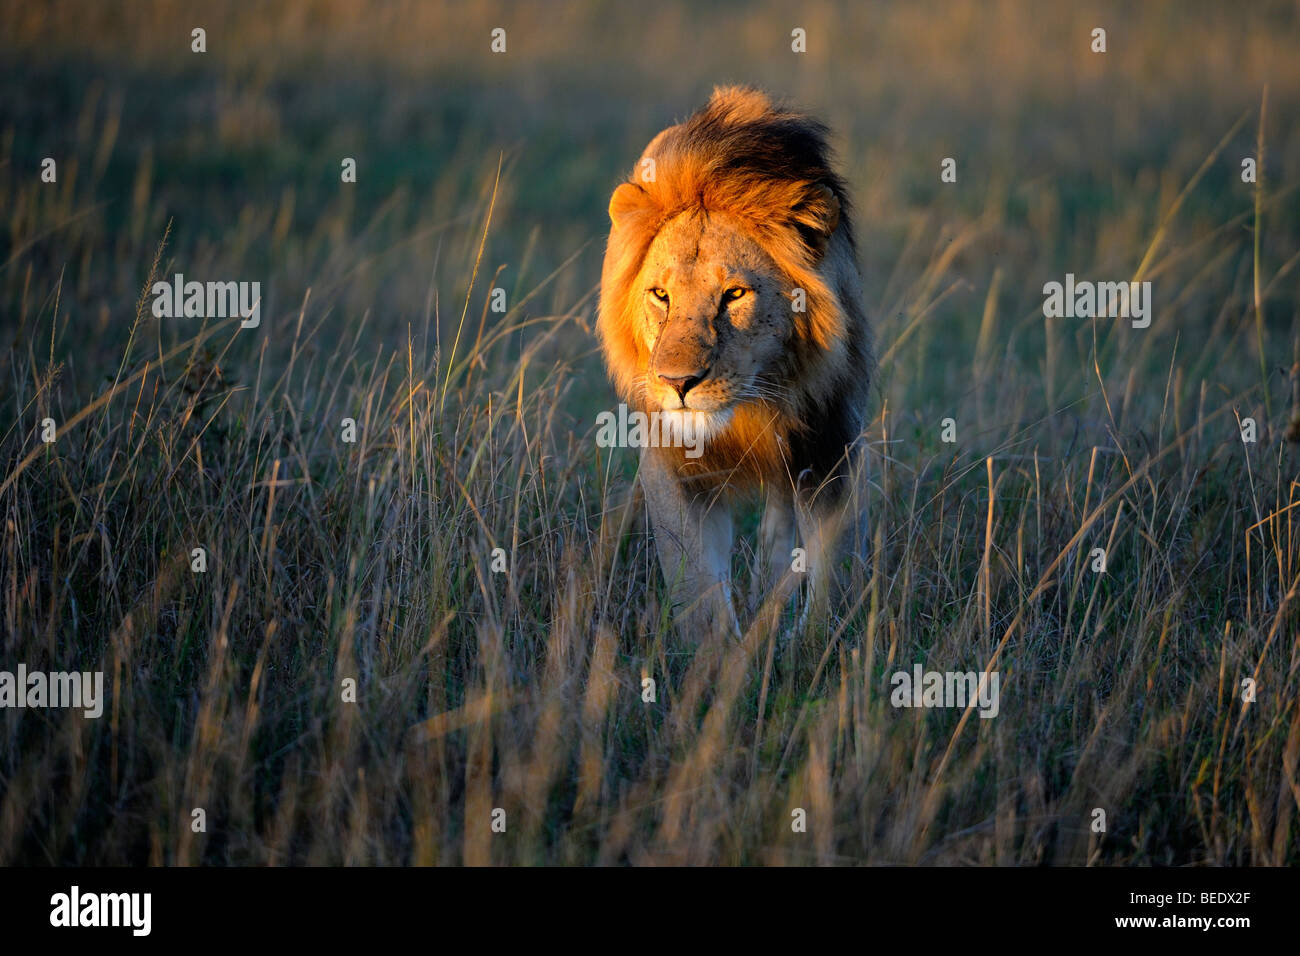 Lion (Panthera leo) with a mane in the first morning light, Masai Mara Nature Reserve, Kenya, East Africa - Stock Image